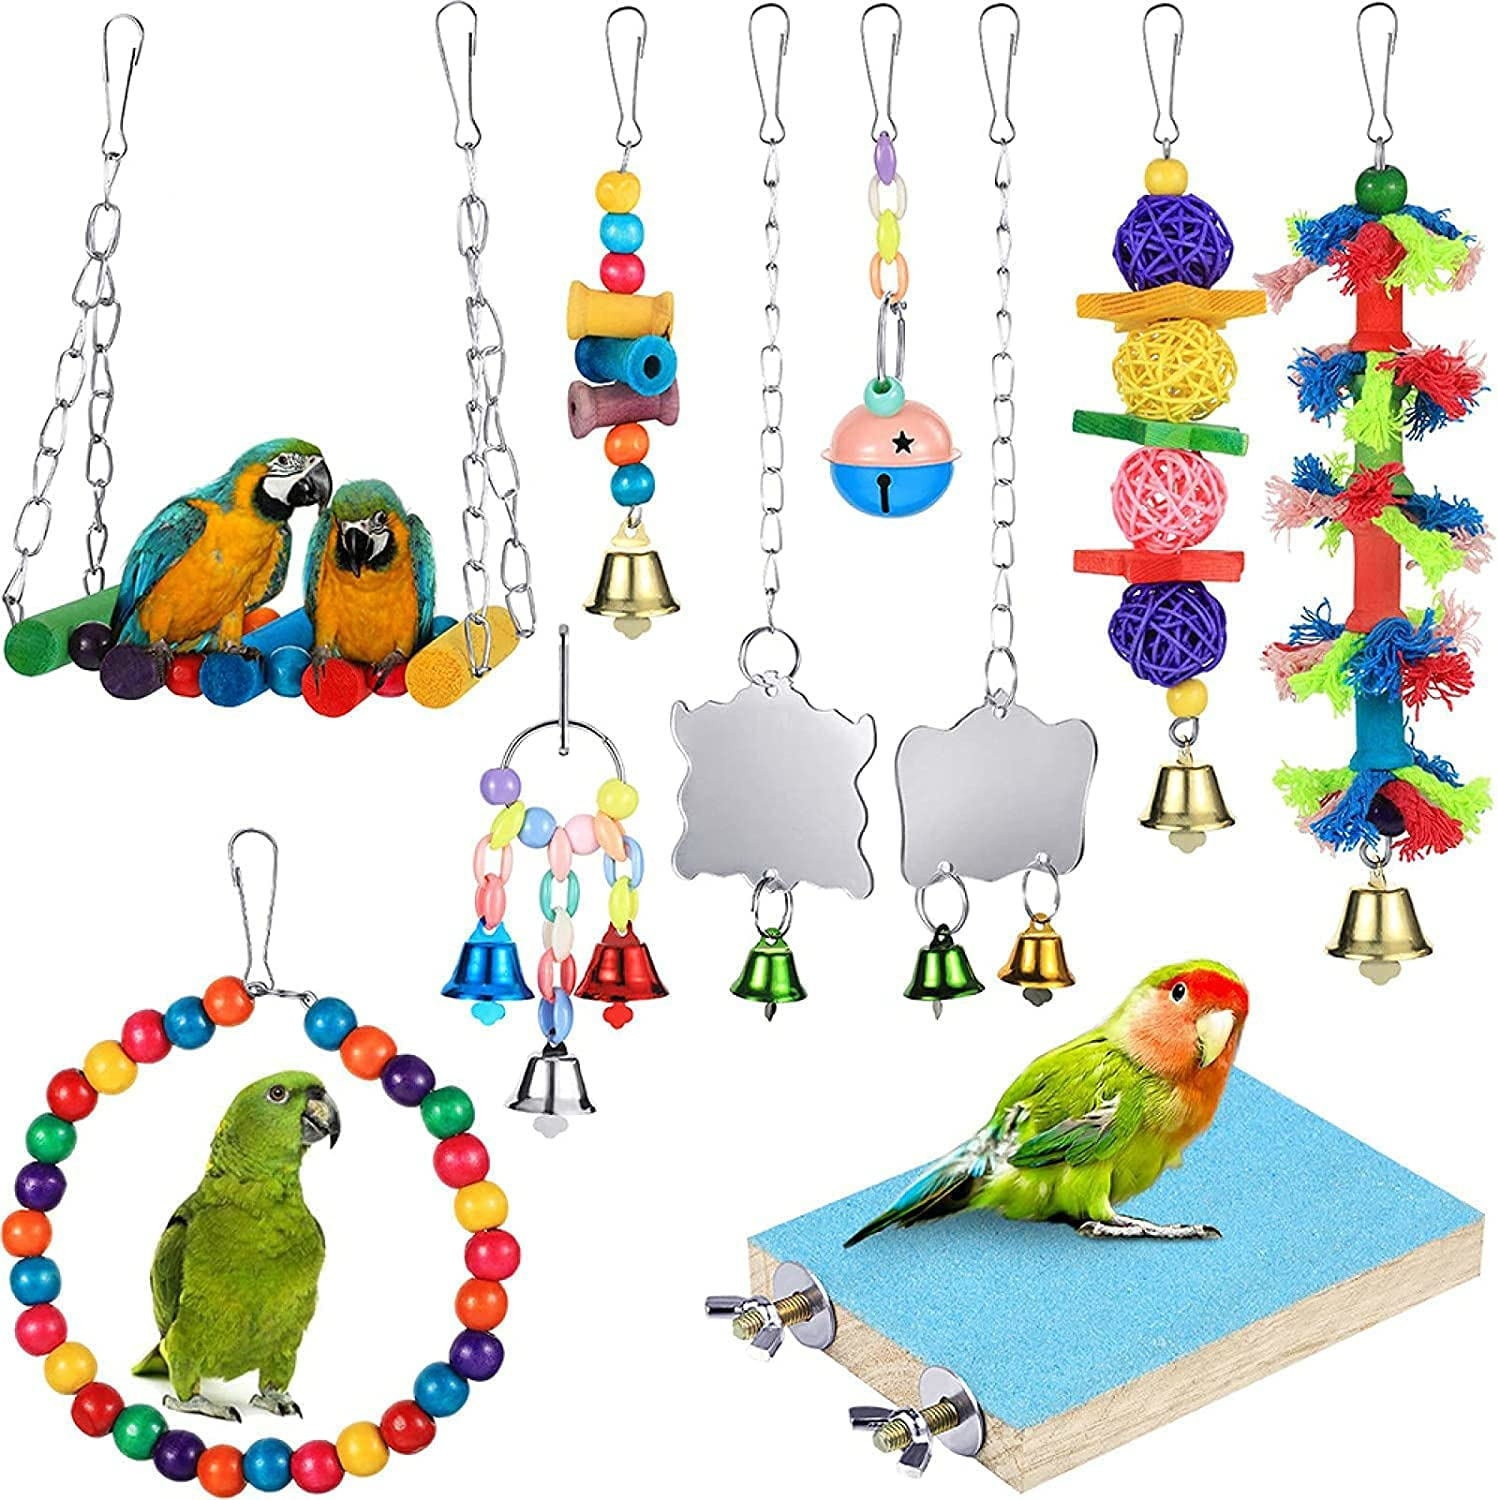 TIANLE 10 PCS Set of Bird Spring new work one after another Chewing Toy Hangin Parrot New sales